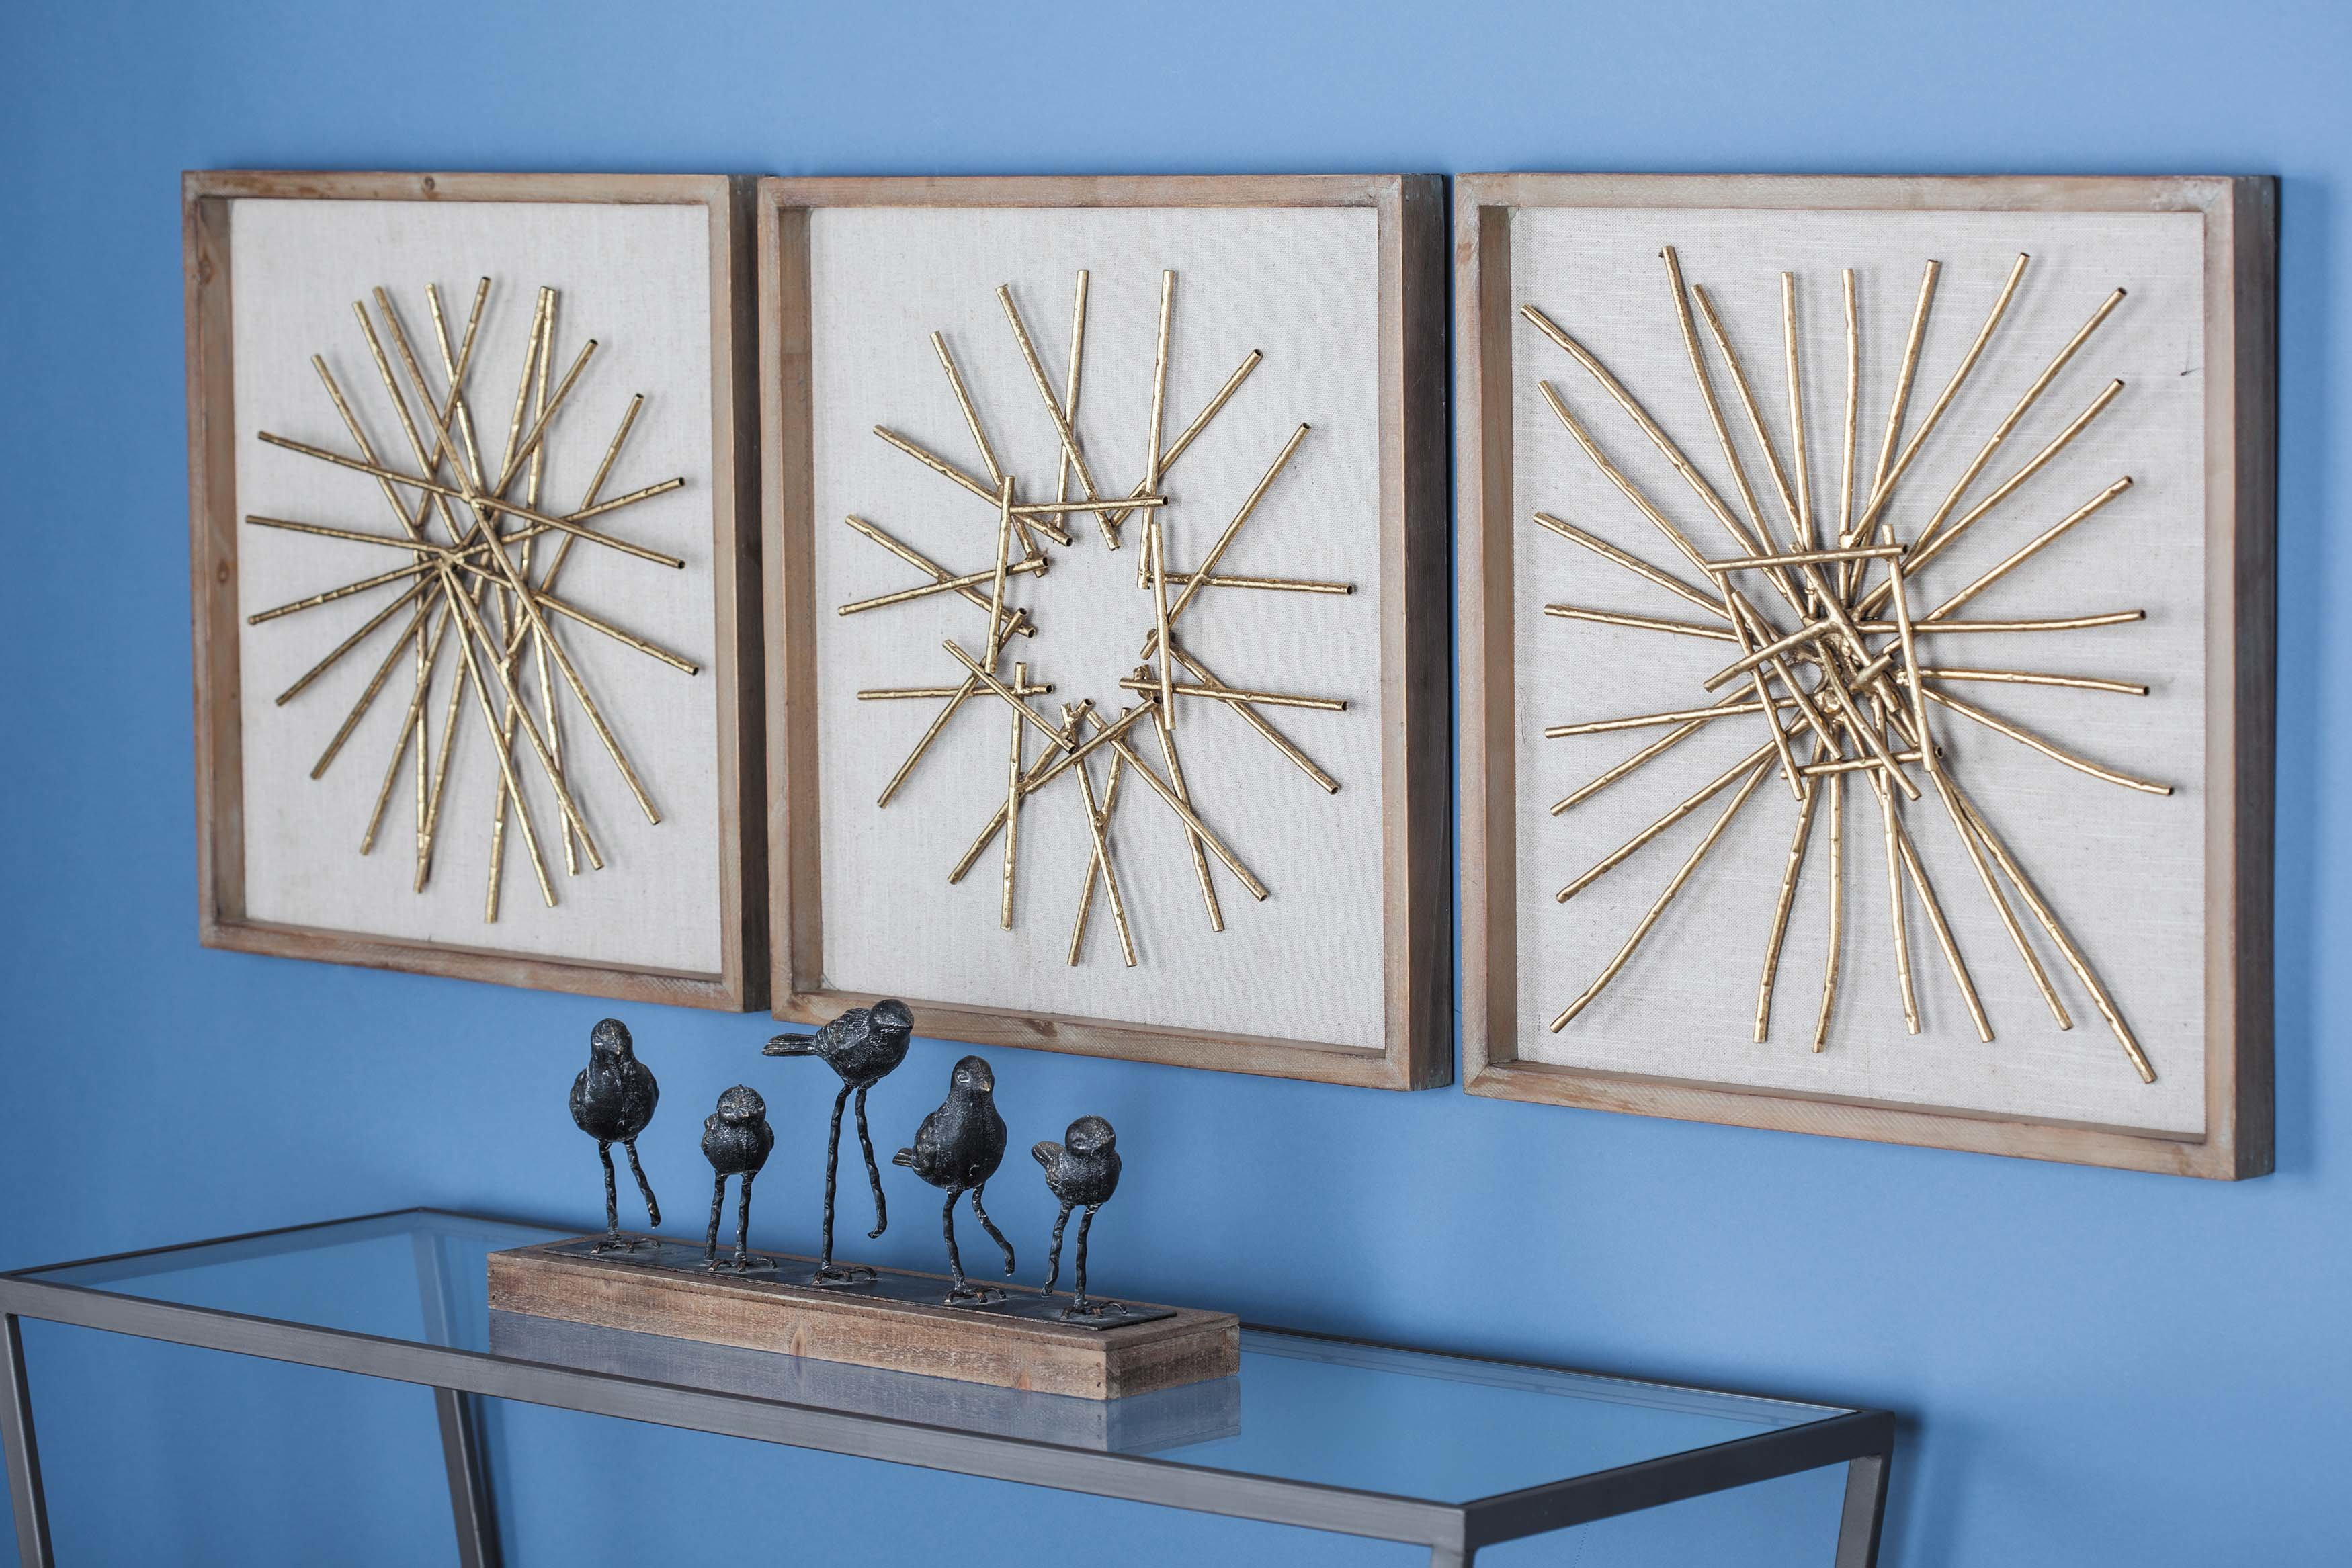 Wayfair Regarding Favorite 3 Piece Wall Decor Sets By Wrought Studio (View 3 of 20)